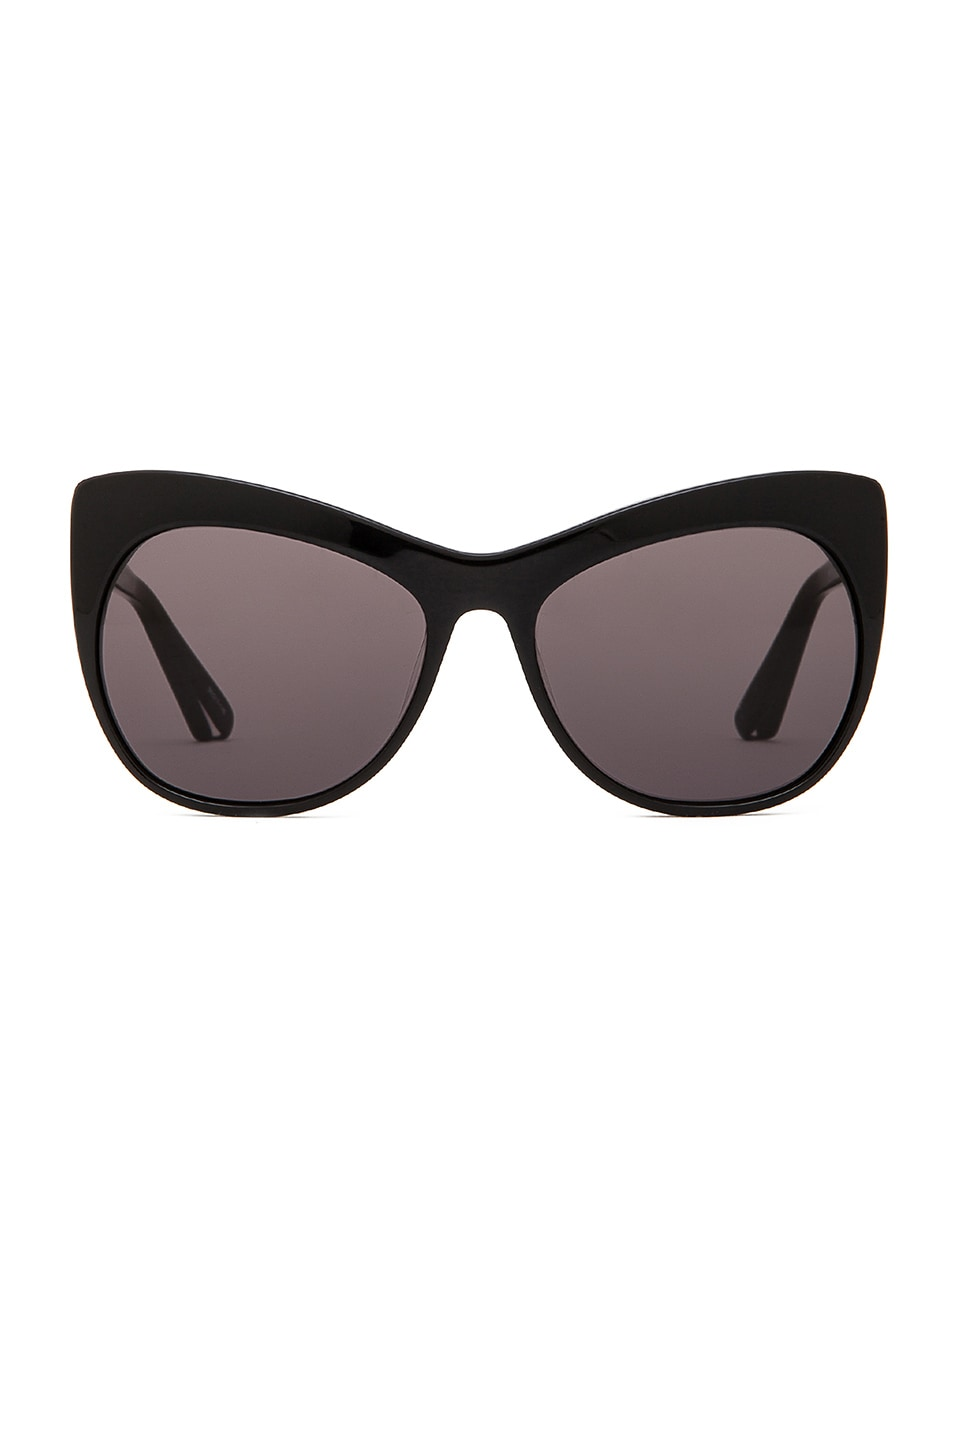 Elizabeth and James Lafayette Sunglasses in Black